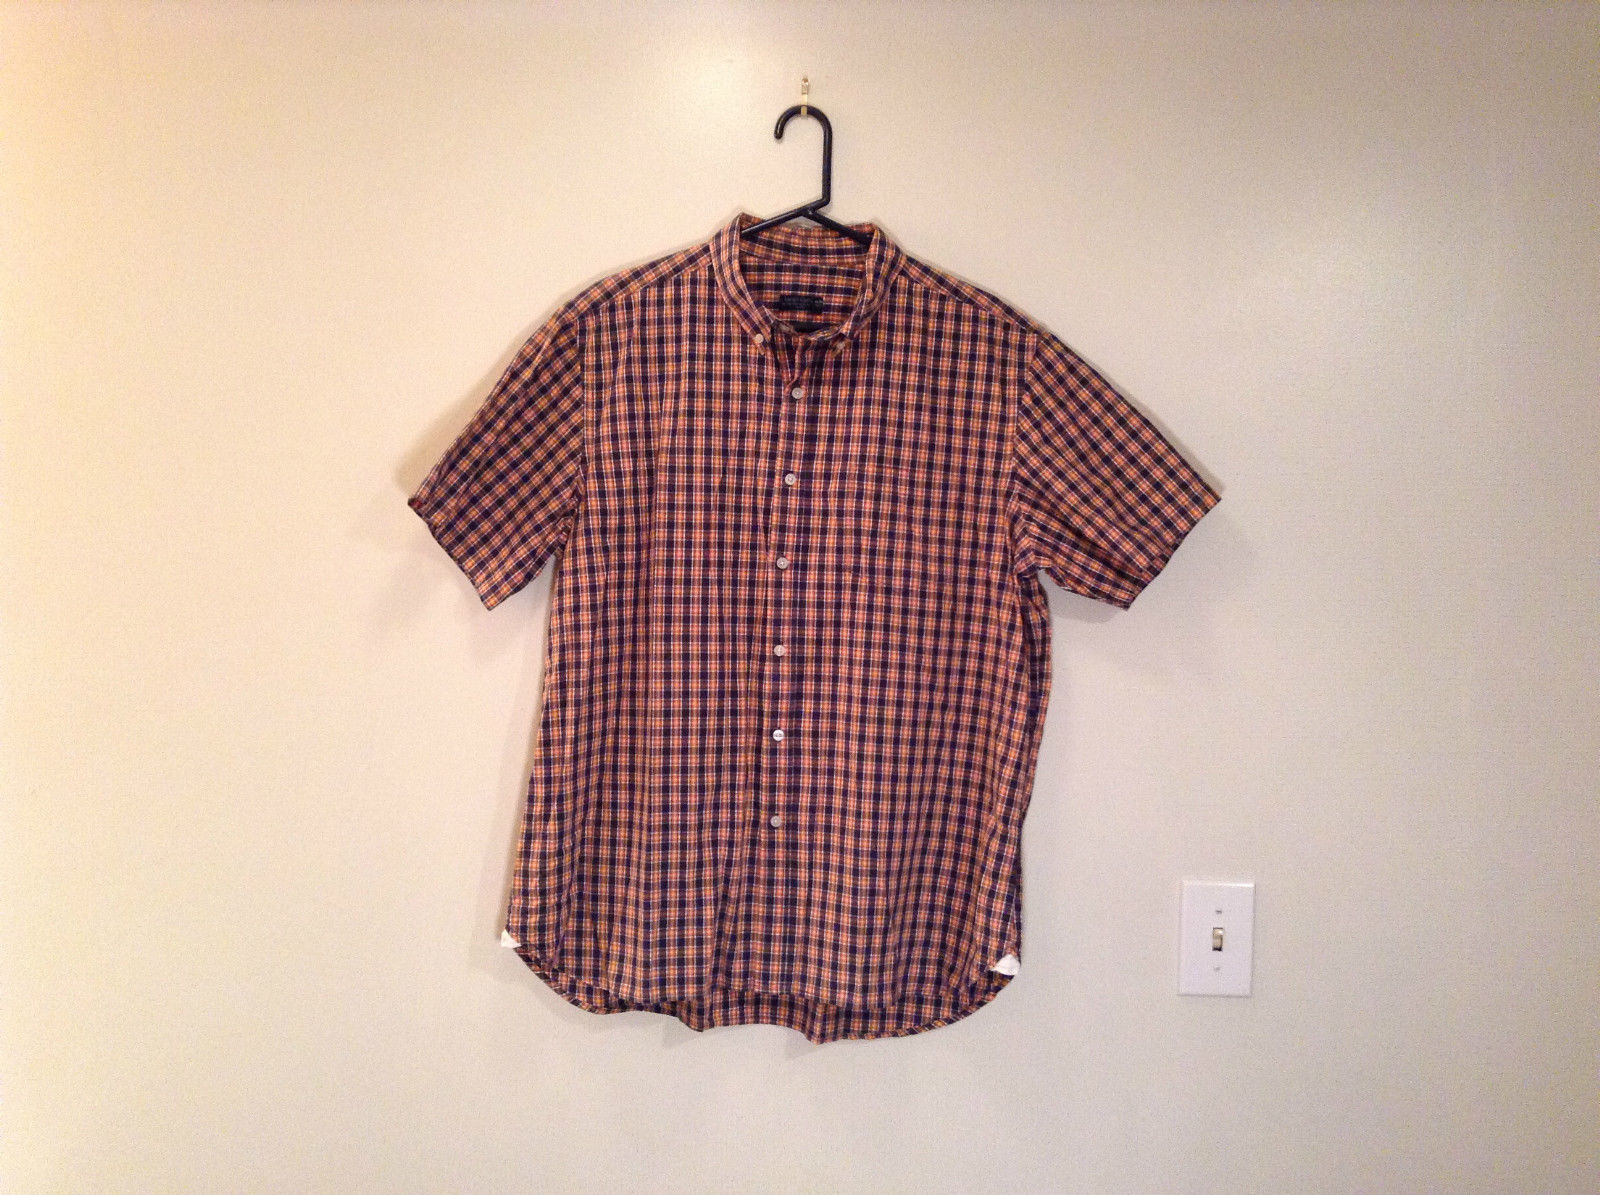 Short Sleeve Faded Glory Size XL 46 to 48 Orange Dark Blue Plaid Pattern Shirt